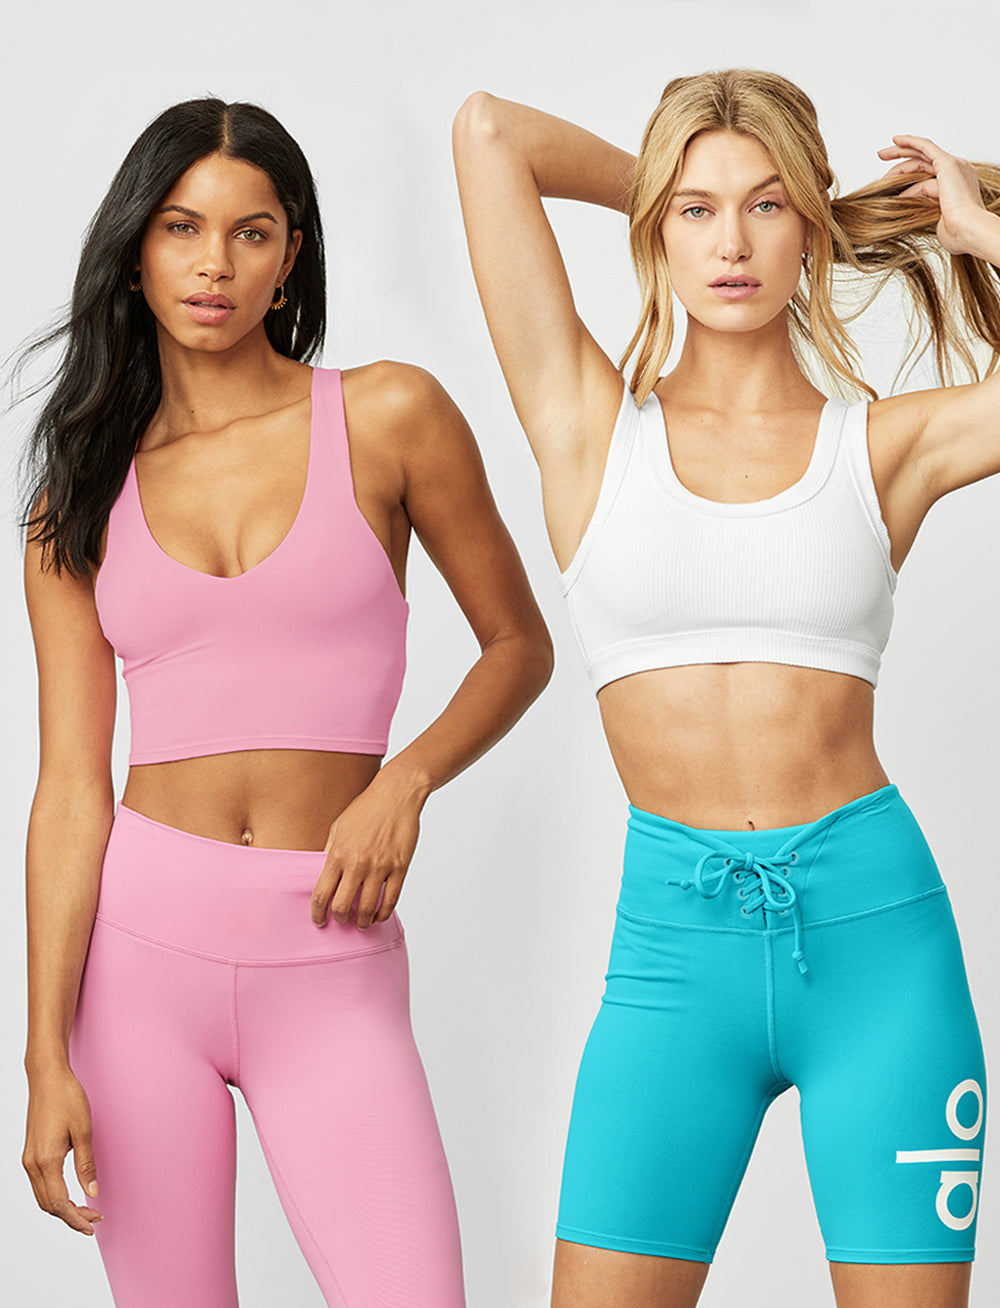 One woman wearing a light pink workout set with a sports bra tank top and high-waisted leggings standing alongside another woman wearing bright blue high-waisted biker leggings with a drawstring and a white sports bra.